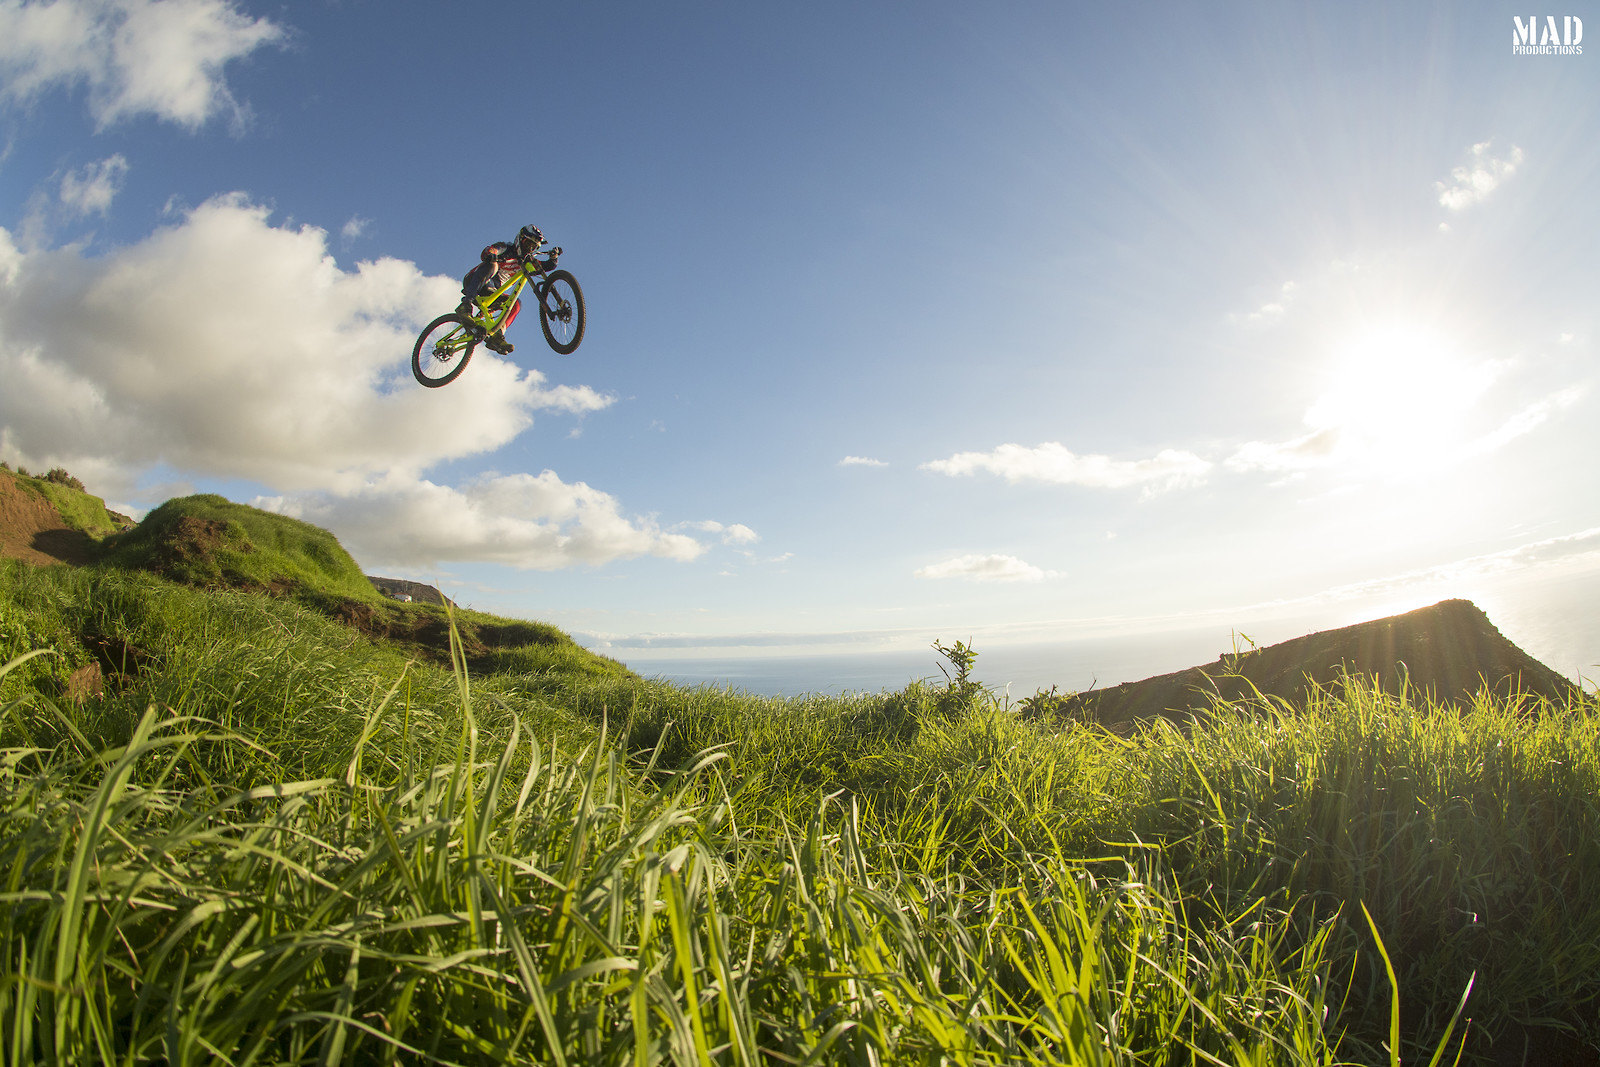 Fly bro... fly. - madproductions - Mountain Biking Pictures - Vital MTB